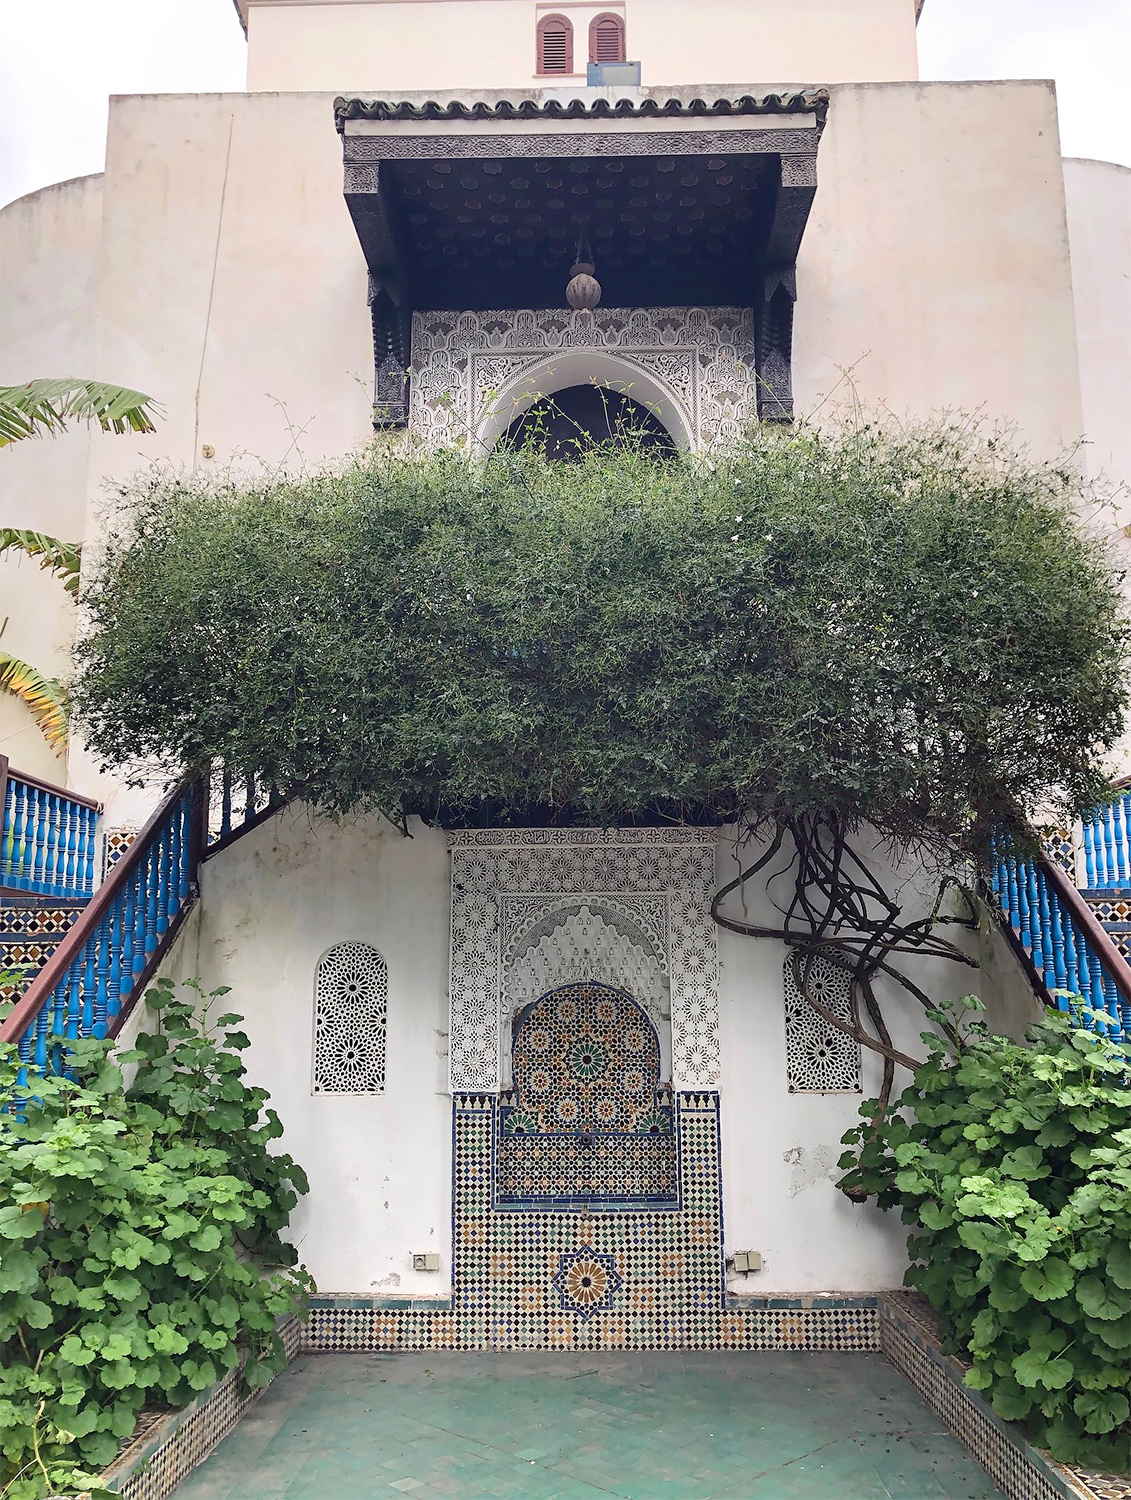 A beautiful tiled fountain in the courtyard of the Royal Artisan School in Tetouan, Morocco